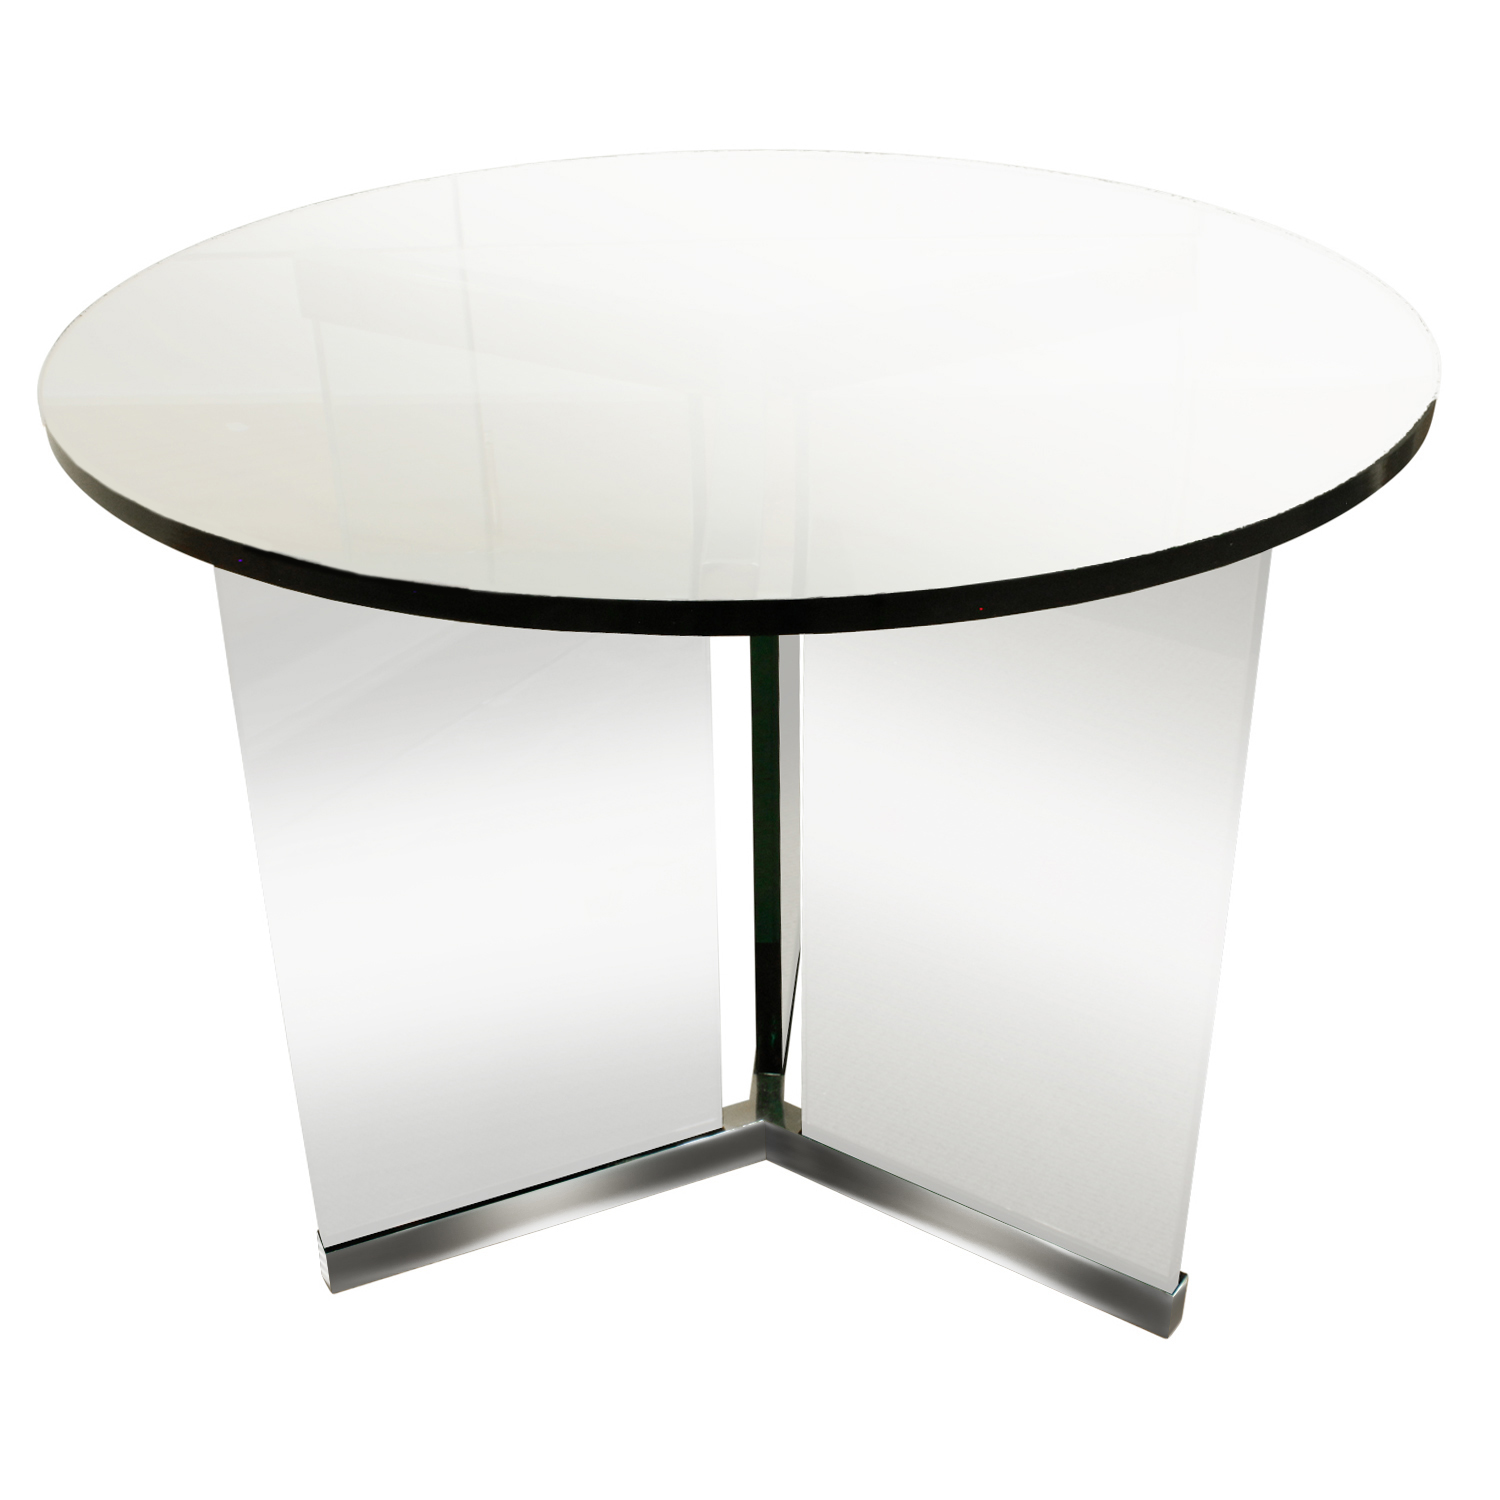 Pace 65 thickglass+chrome endtable183 frnt.JPG